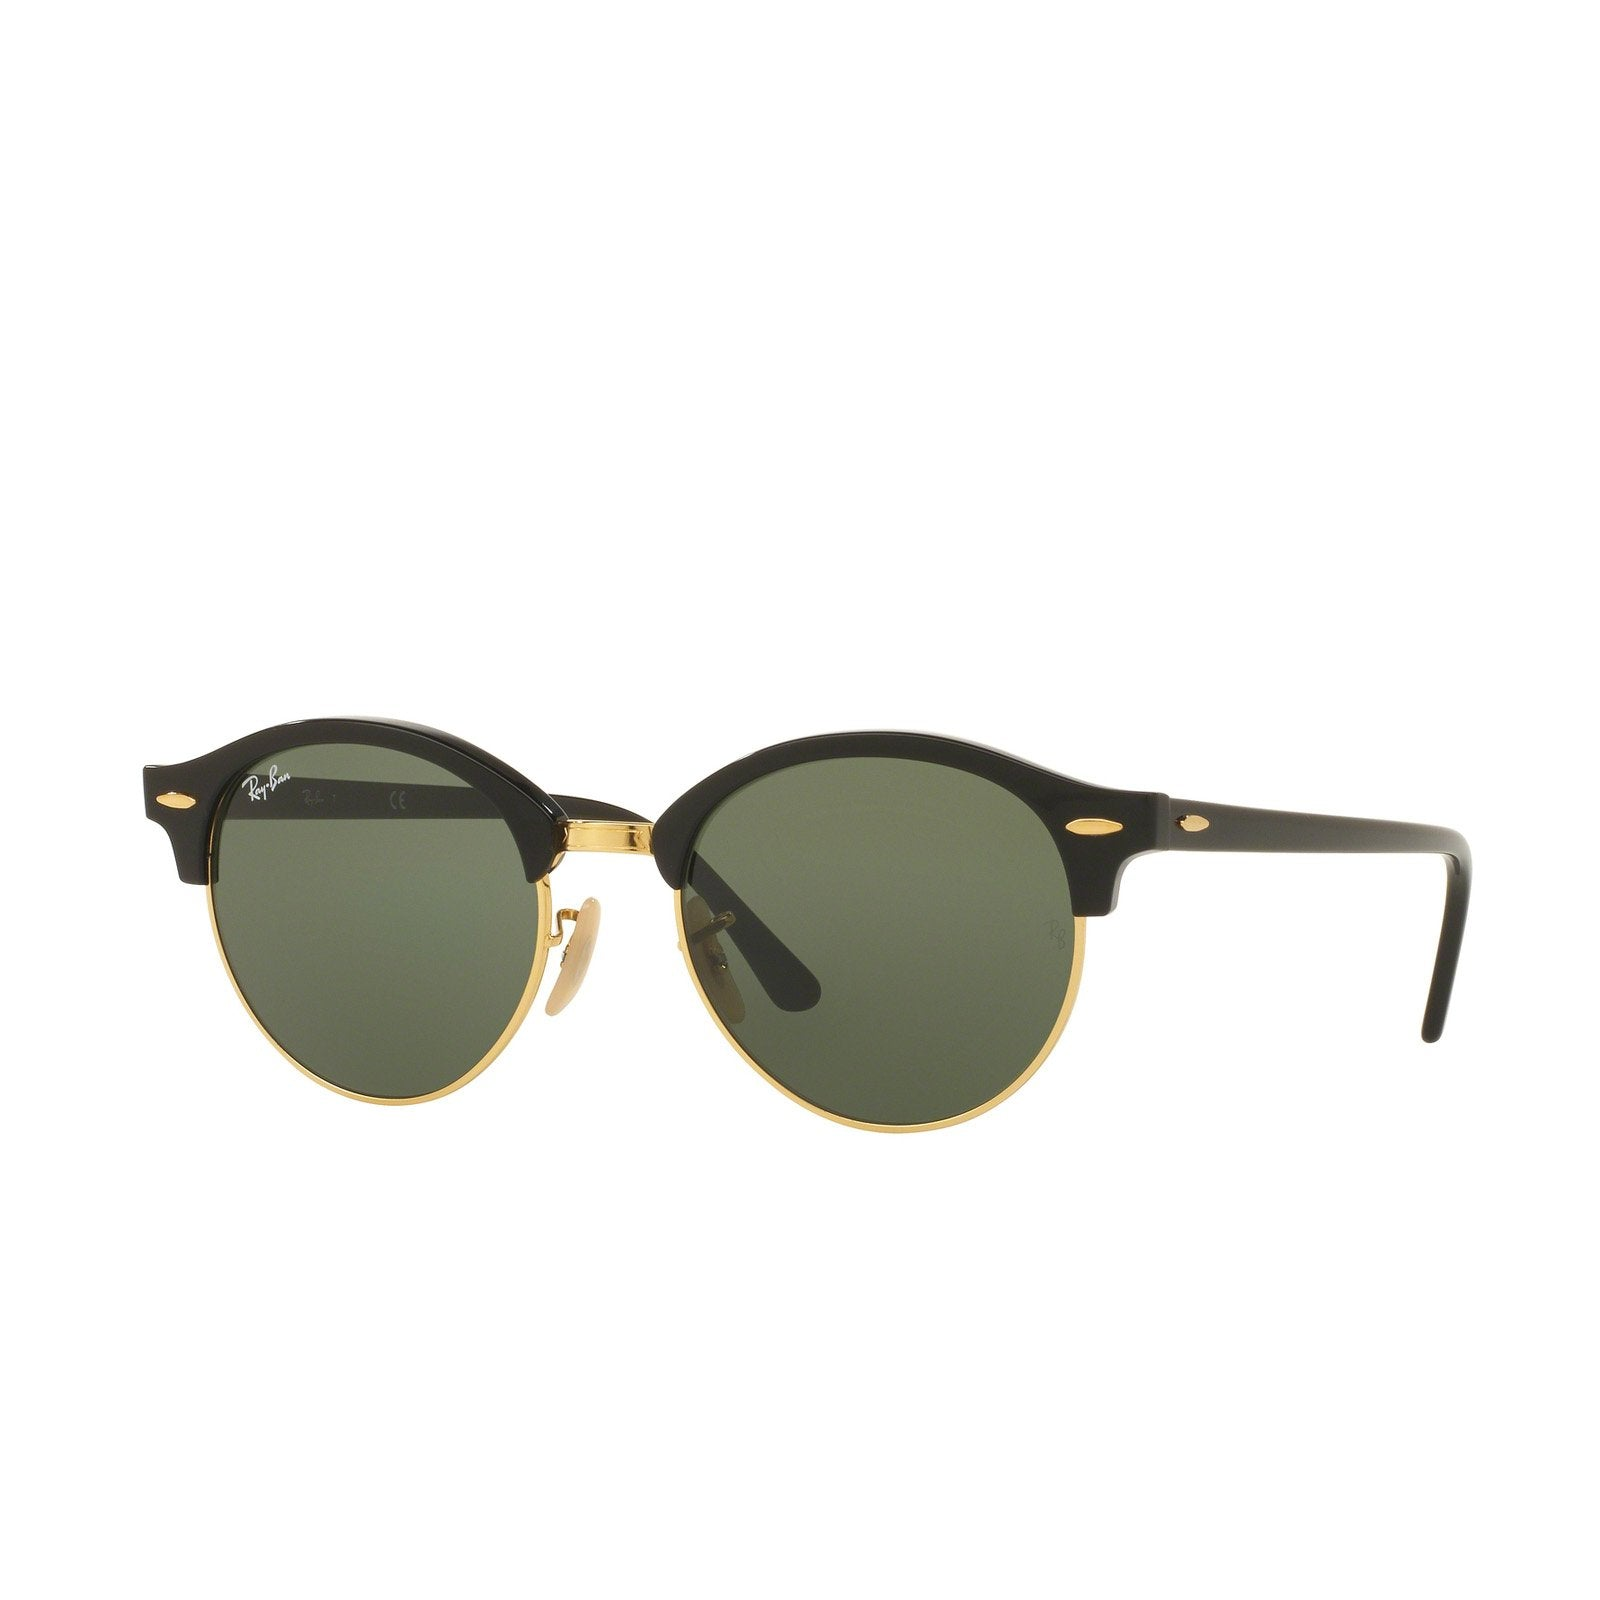 Ray-Ban RB4246 901 Sunglasses